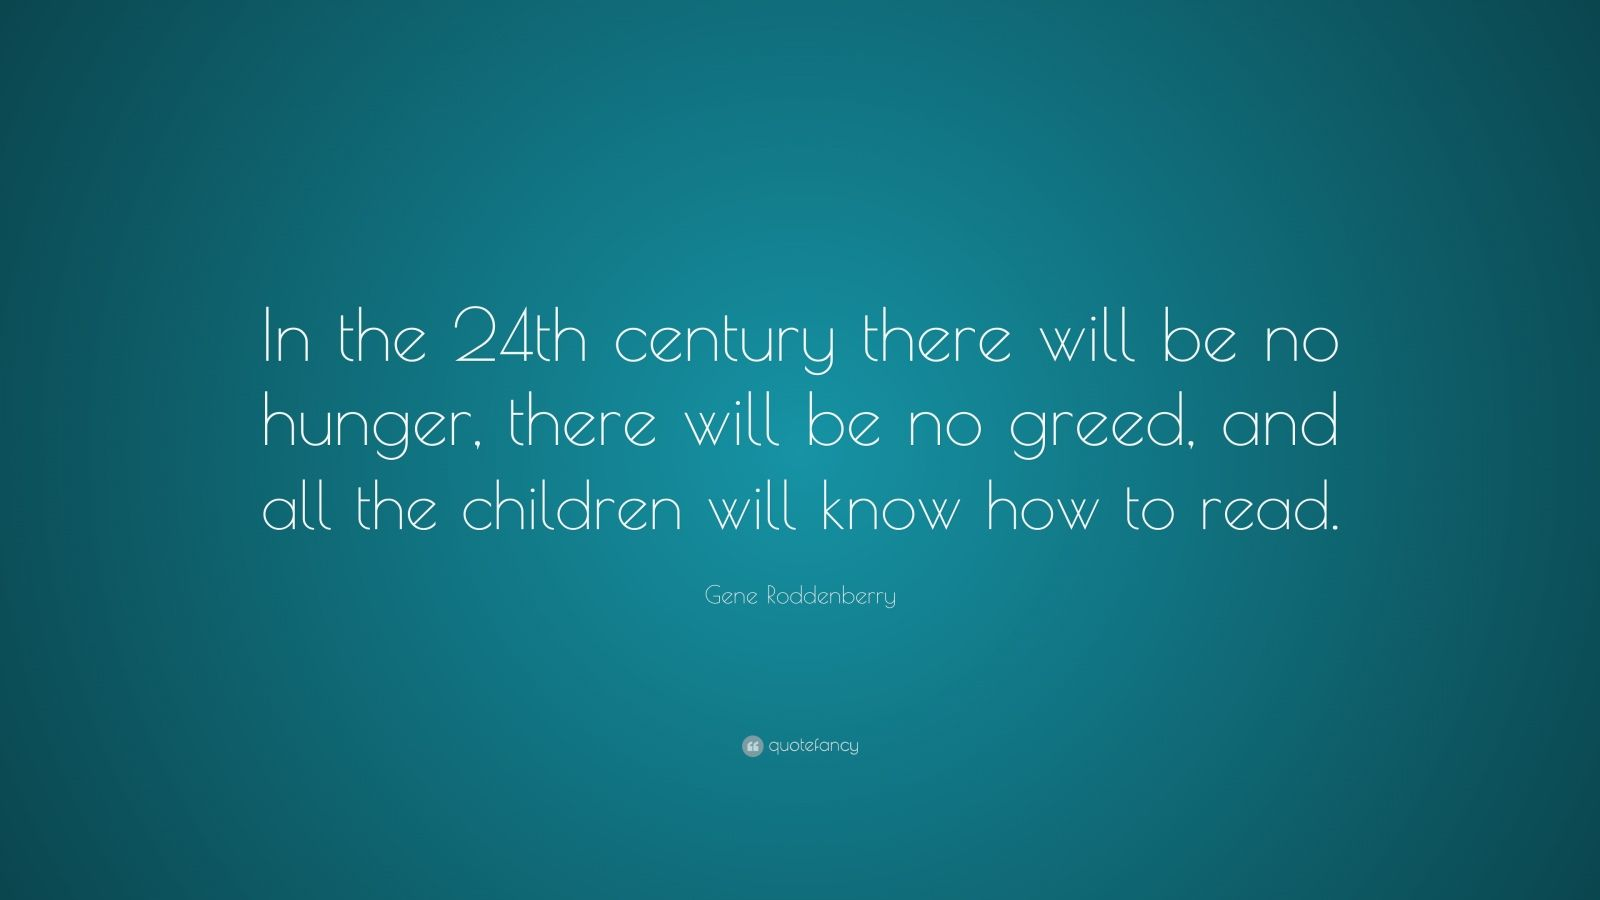 """Gene Roddenberry Quote: """"In the 24th century there will be no hunger, there will be no greed, and all the children will know how to read."""""""